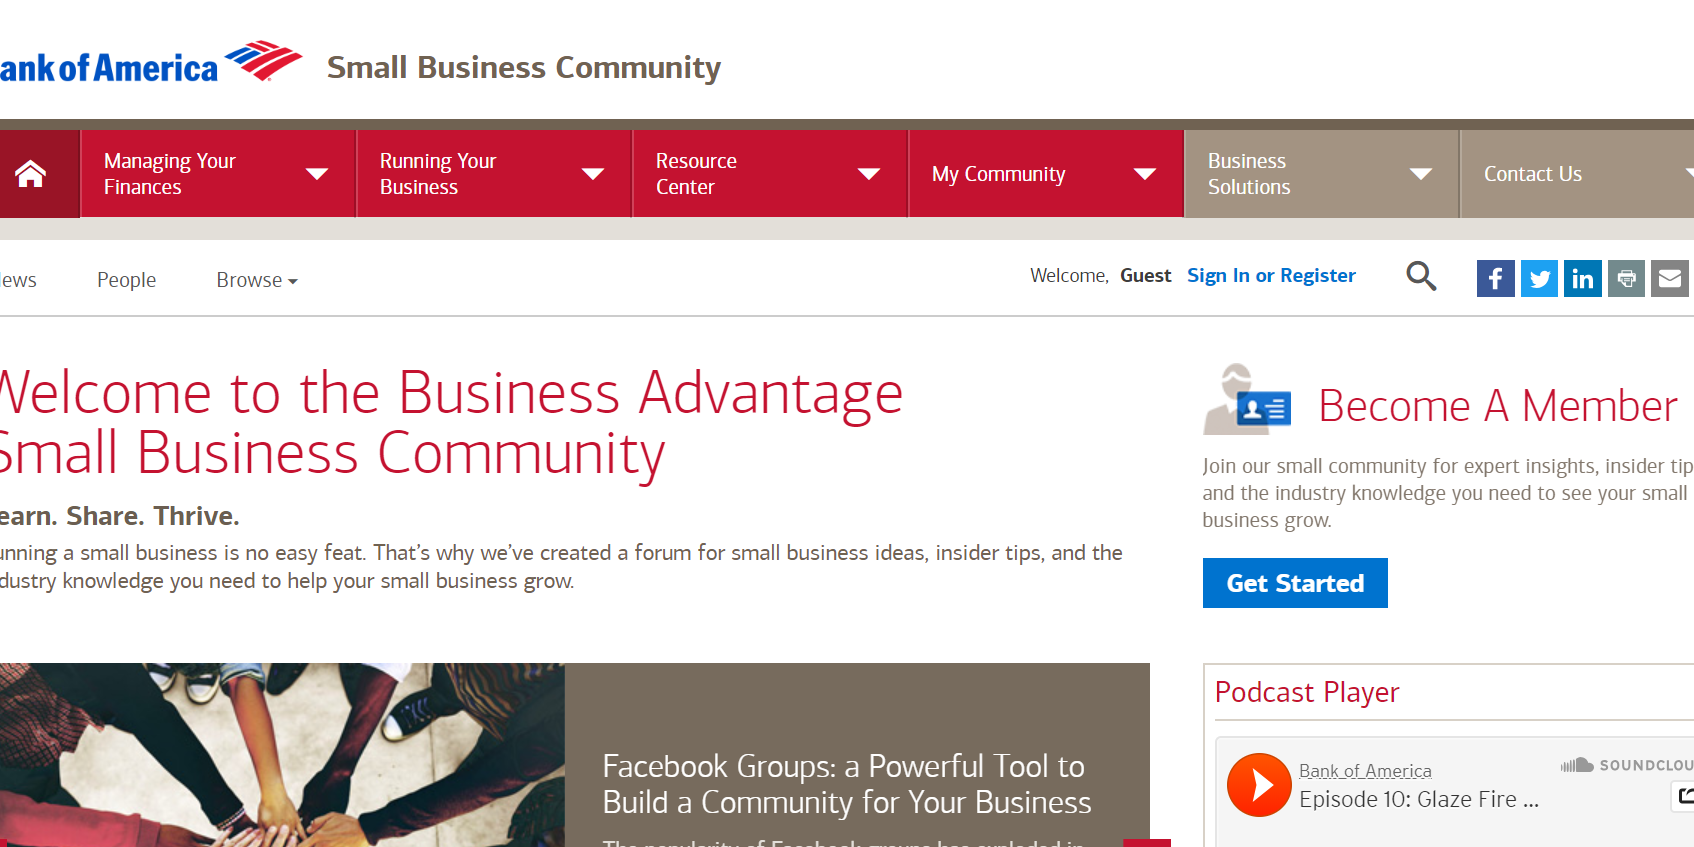 Bank of America Small Business Community